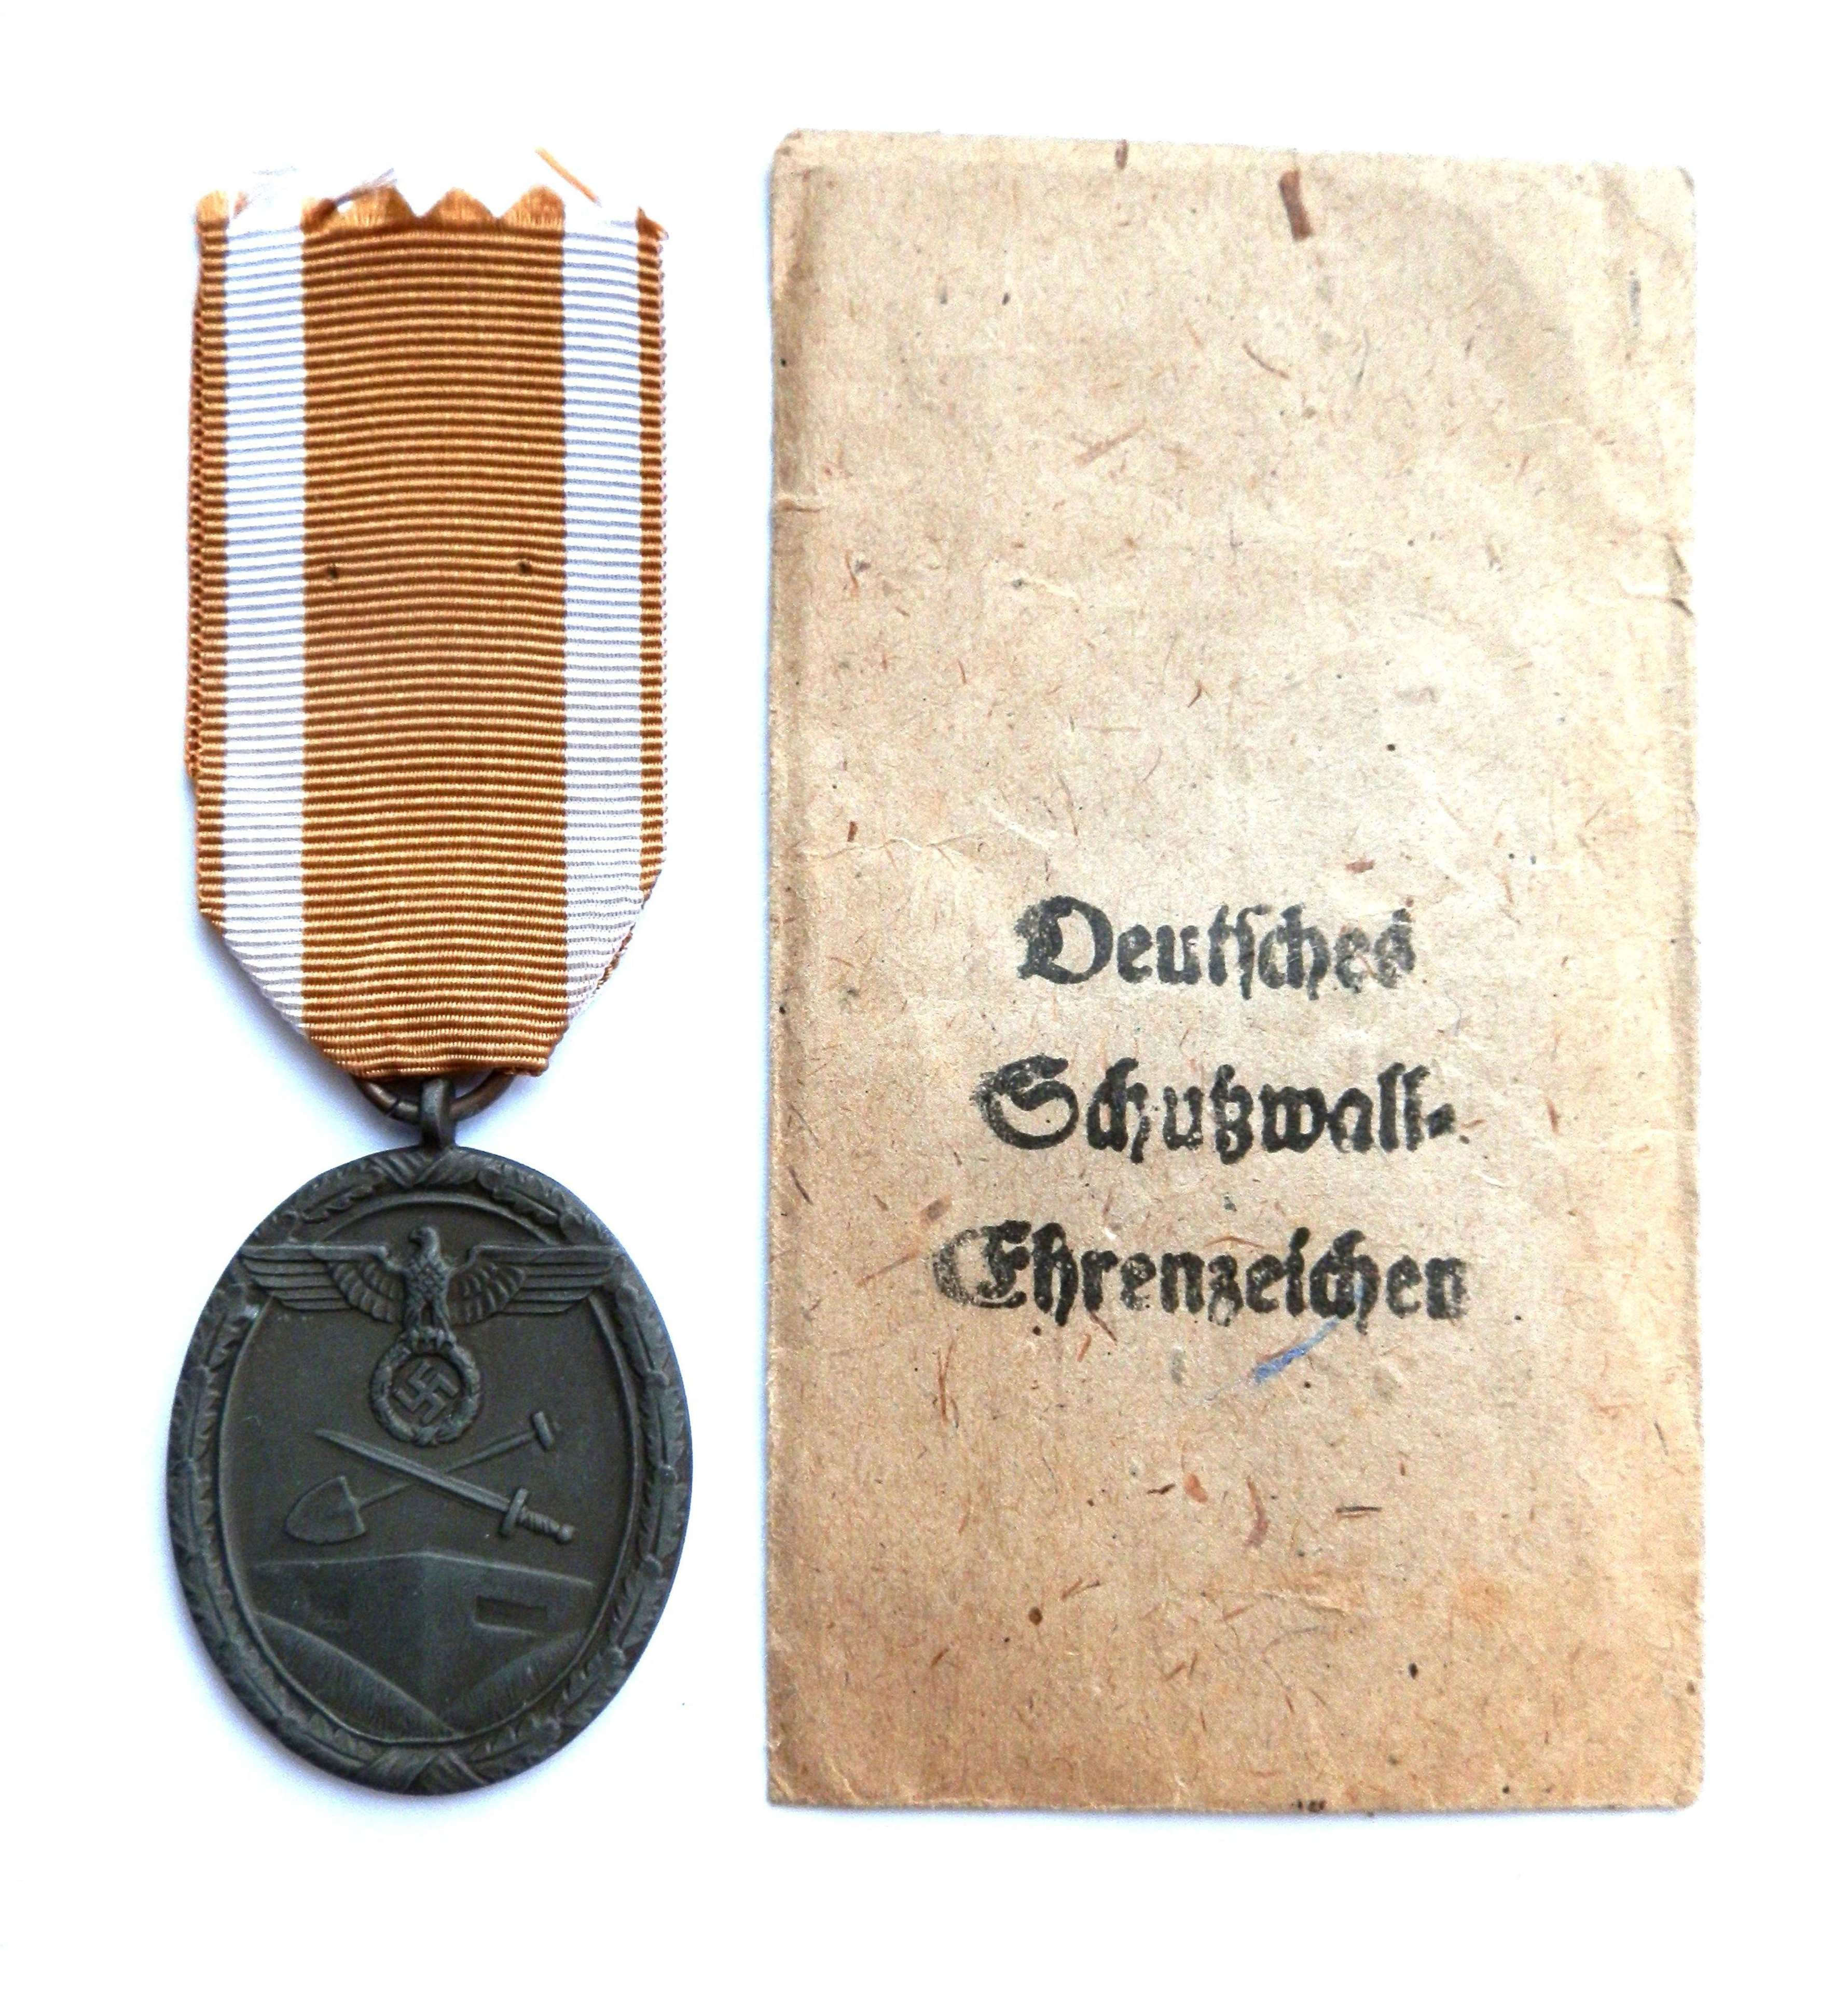 Great West Wall Medal.